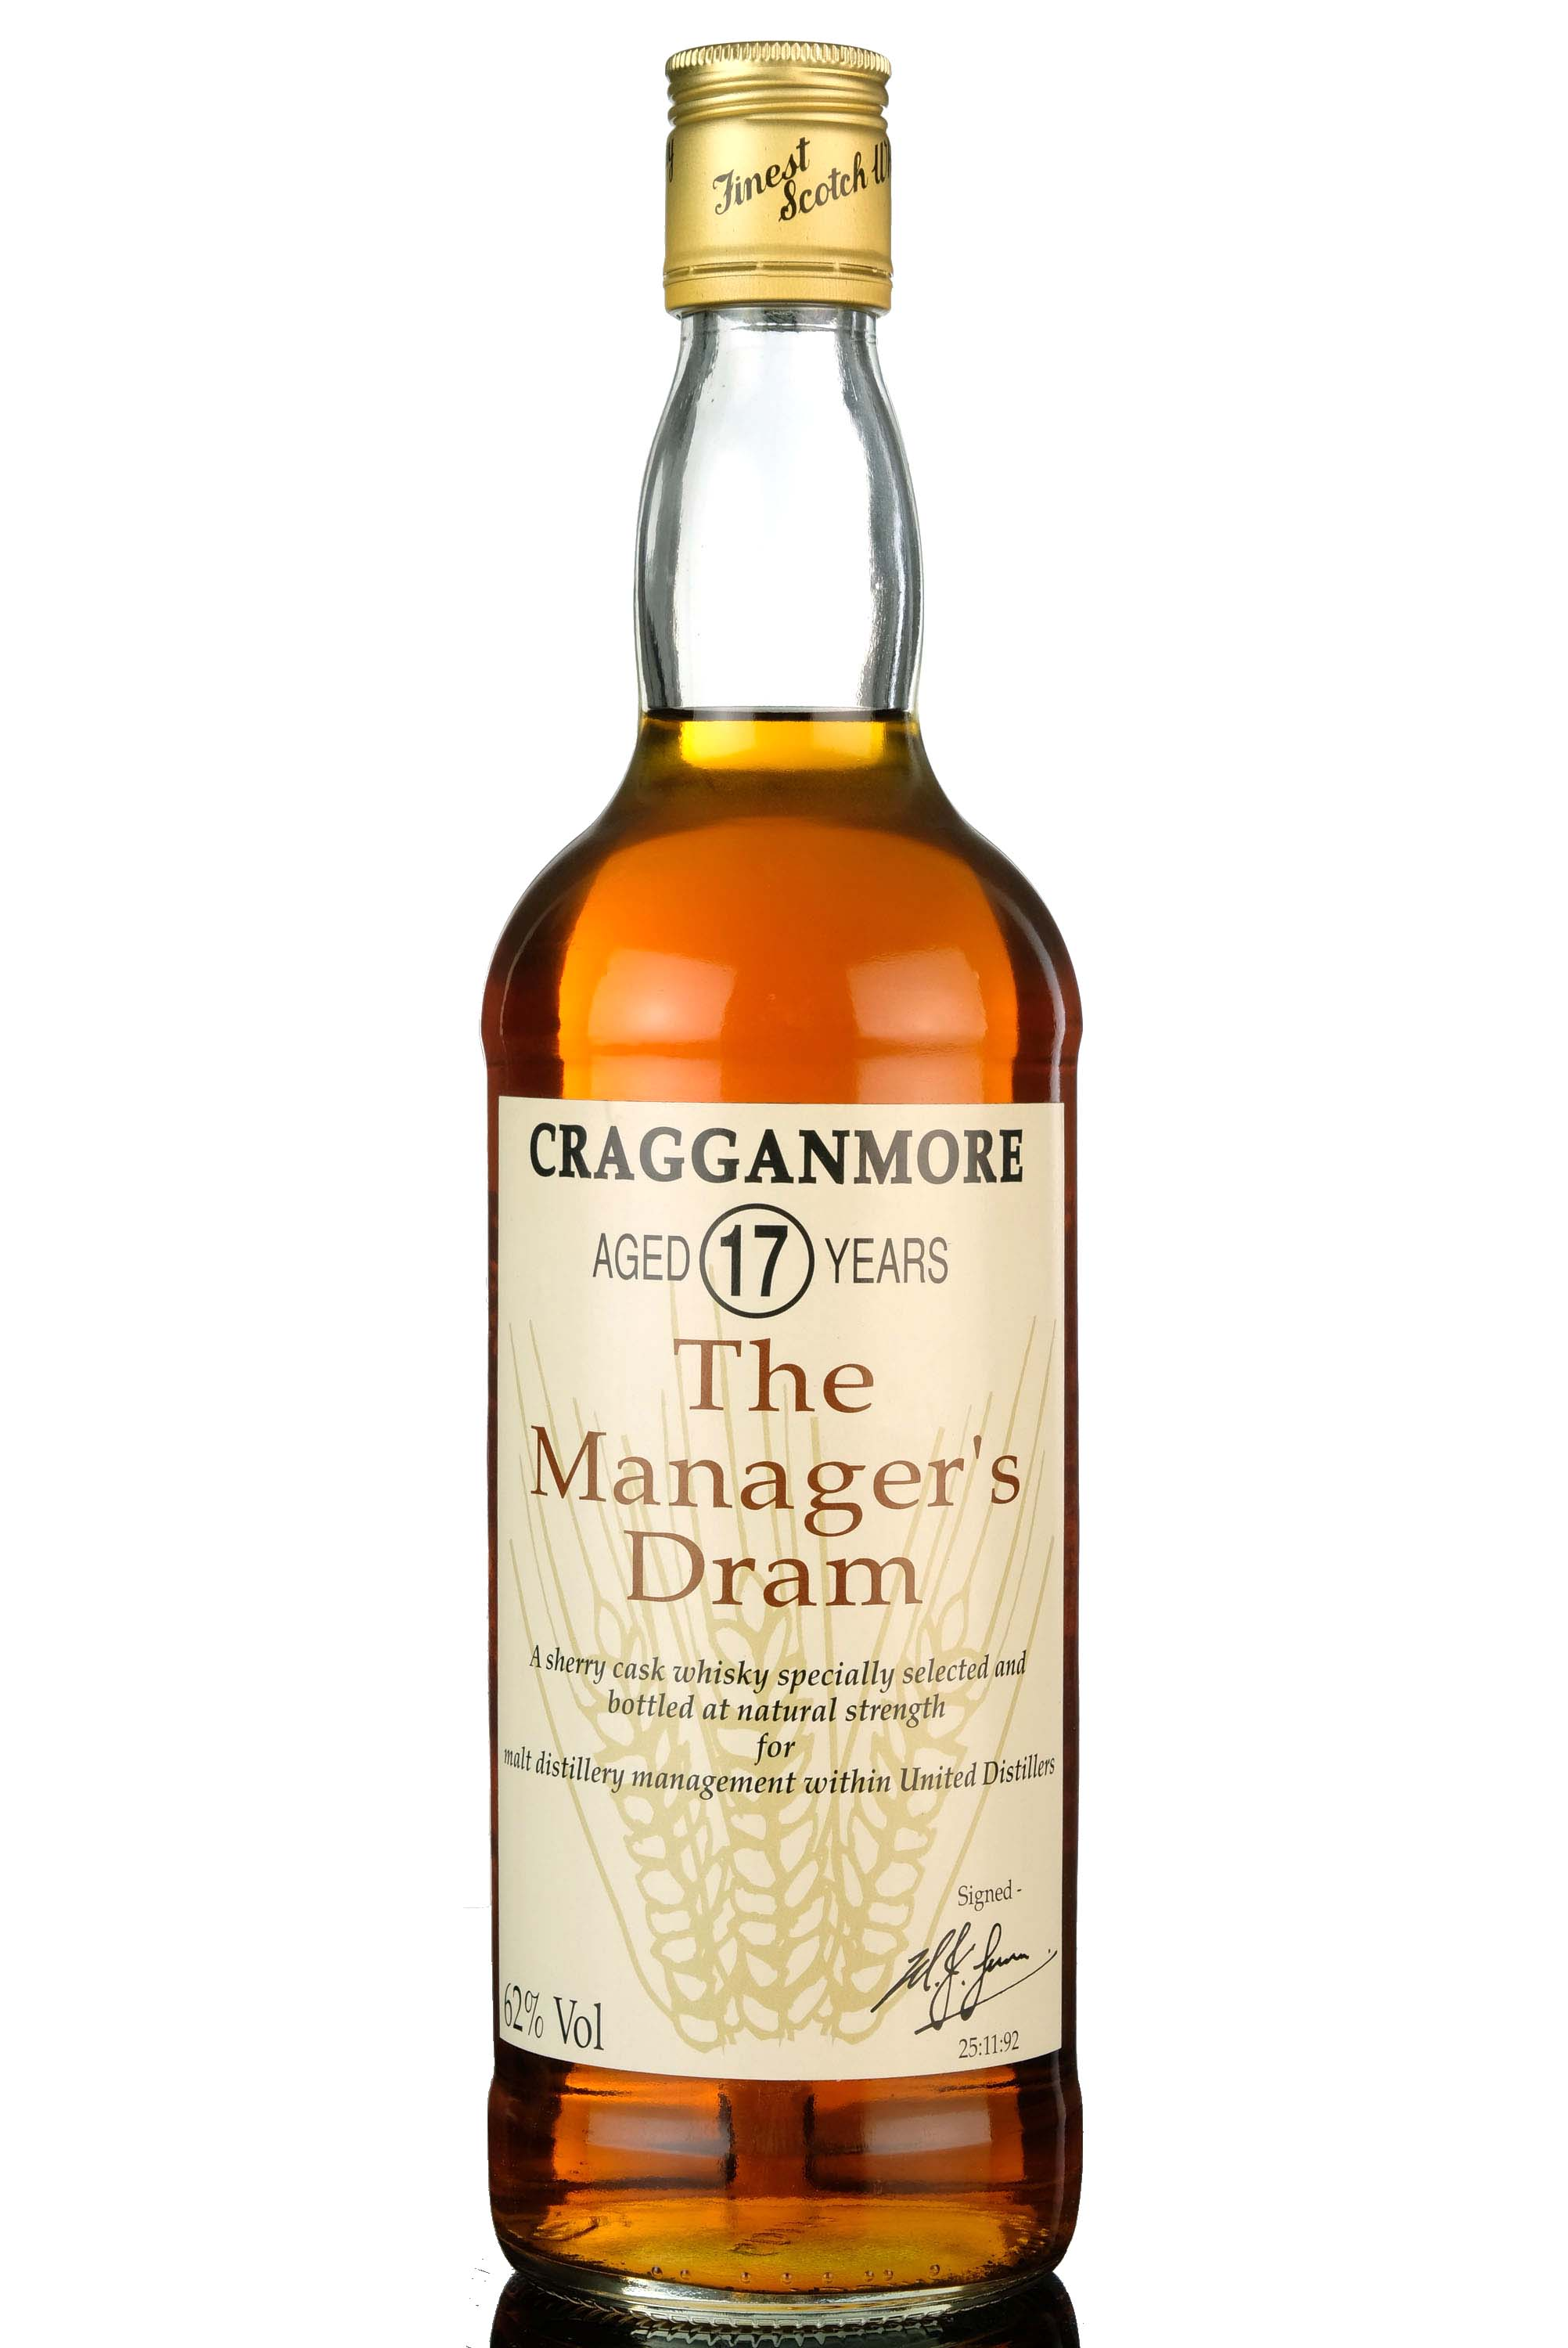 cragganmore 17 year old - managers dram 1992